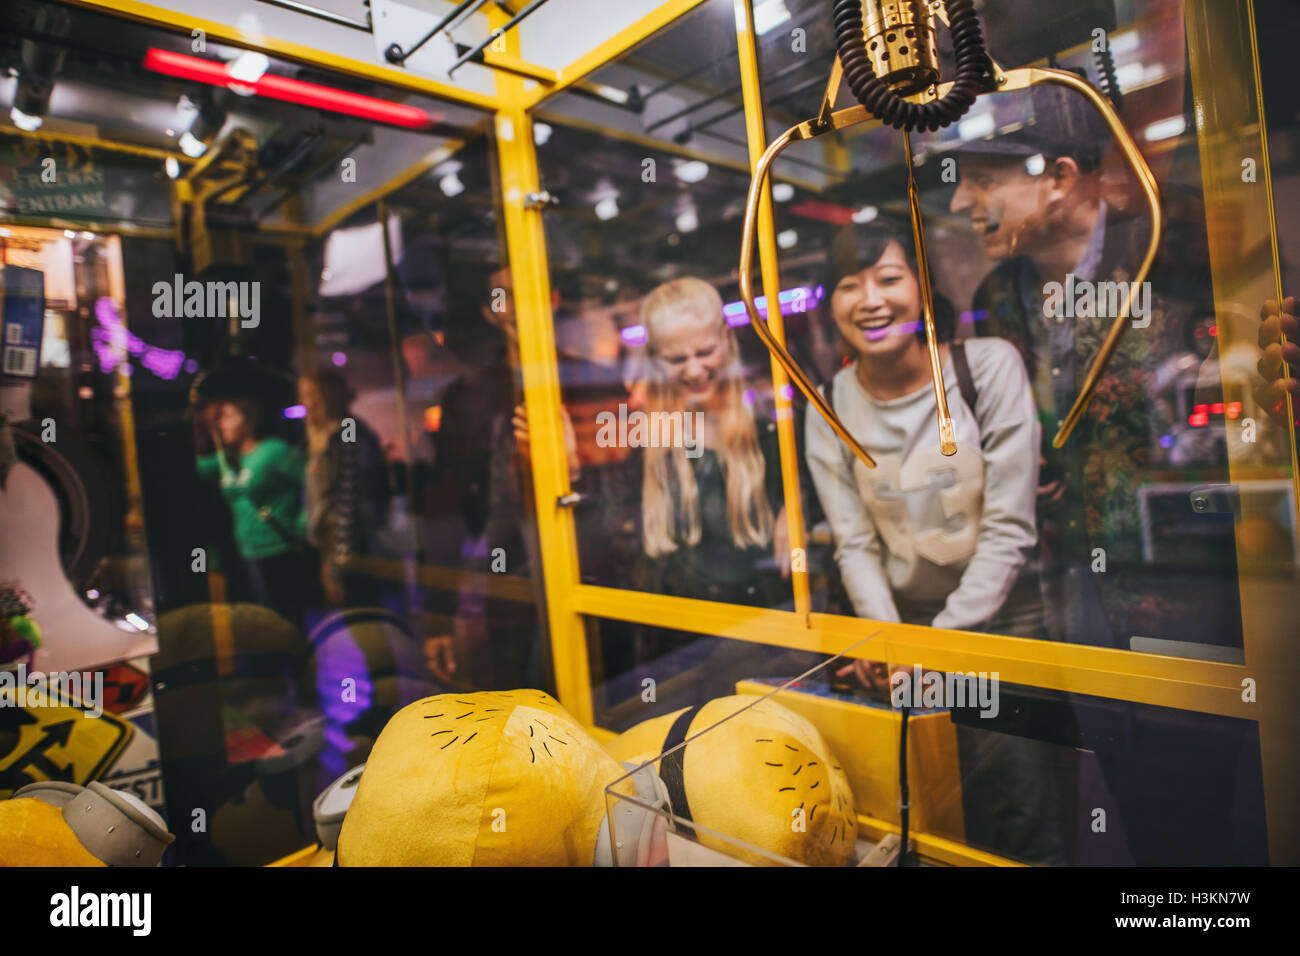 Happy young woman playing toy jeu saisissant avec des amis au parc d'amusement. Photo Stock